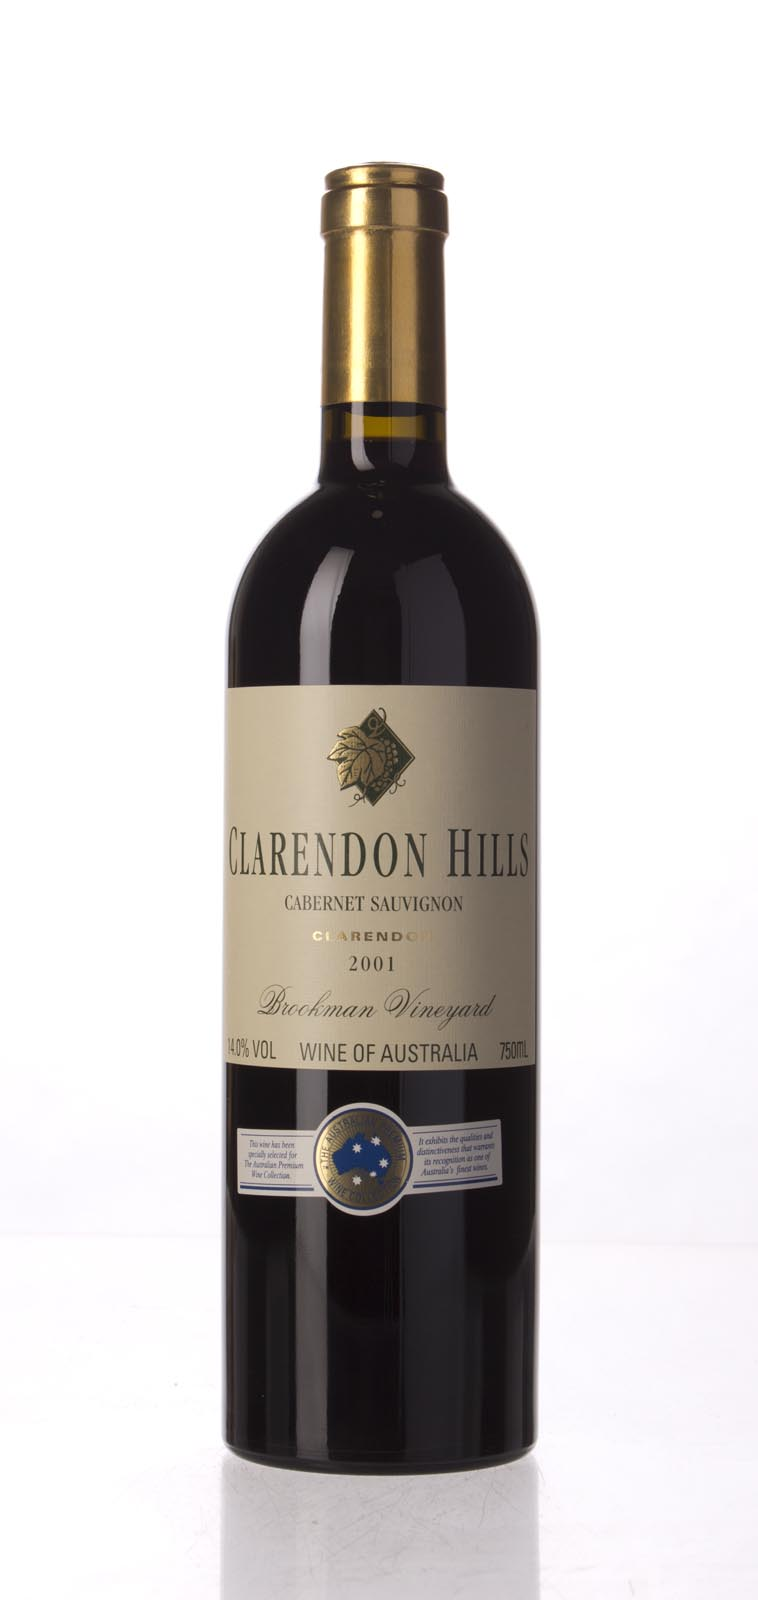 Clarendon Hills Cabernet Sauvignon Brookman Vineyard 2001, 750mL (WA88) from The BPW - Merchants of rare and fine wines.